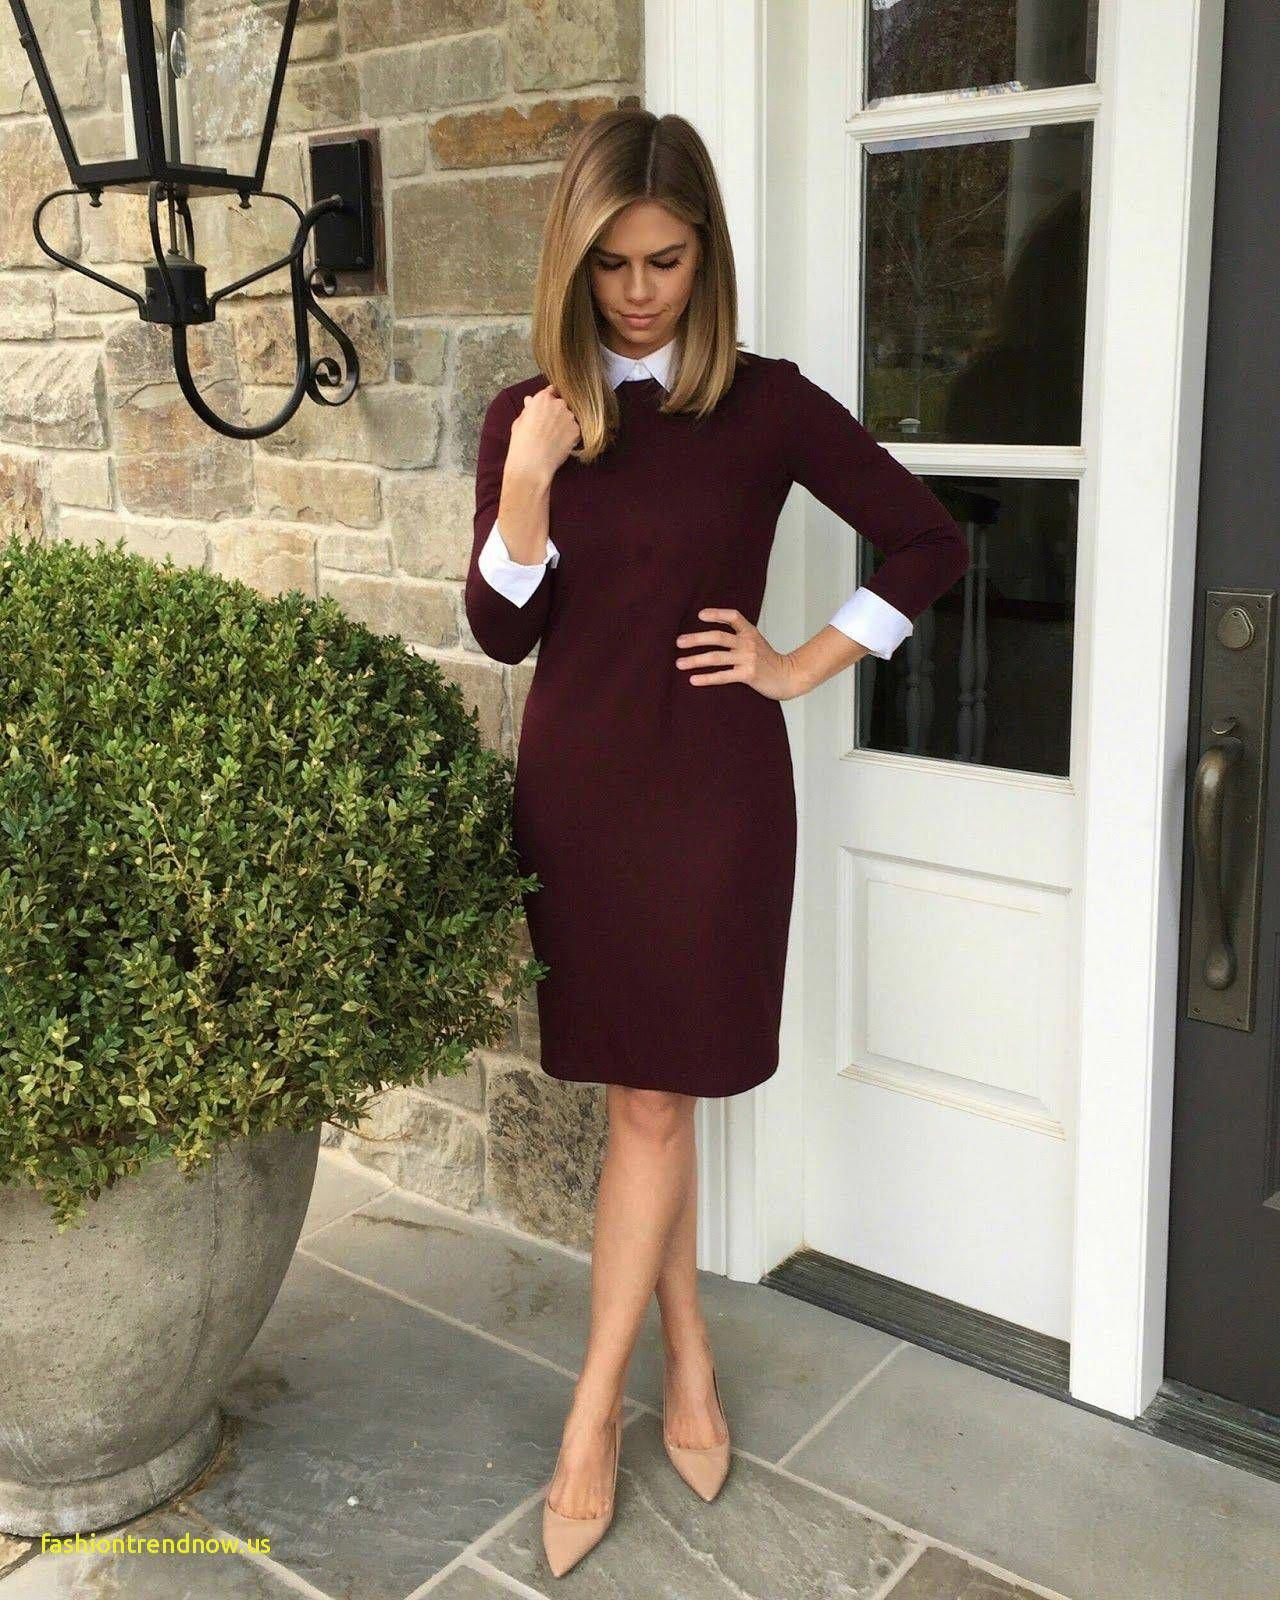 baggy dresses for working moms